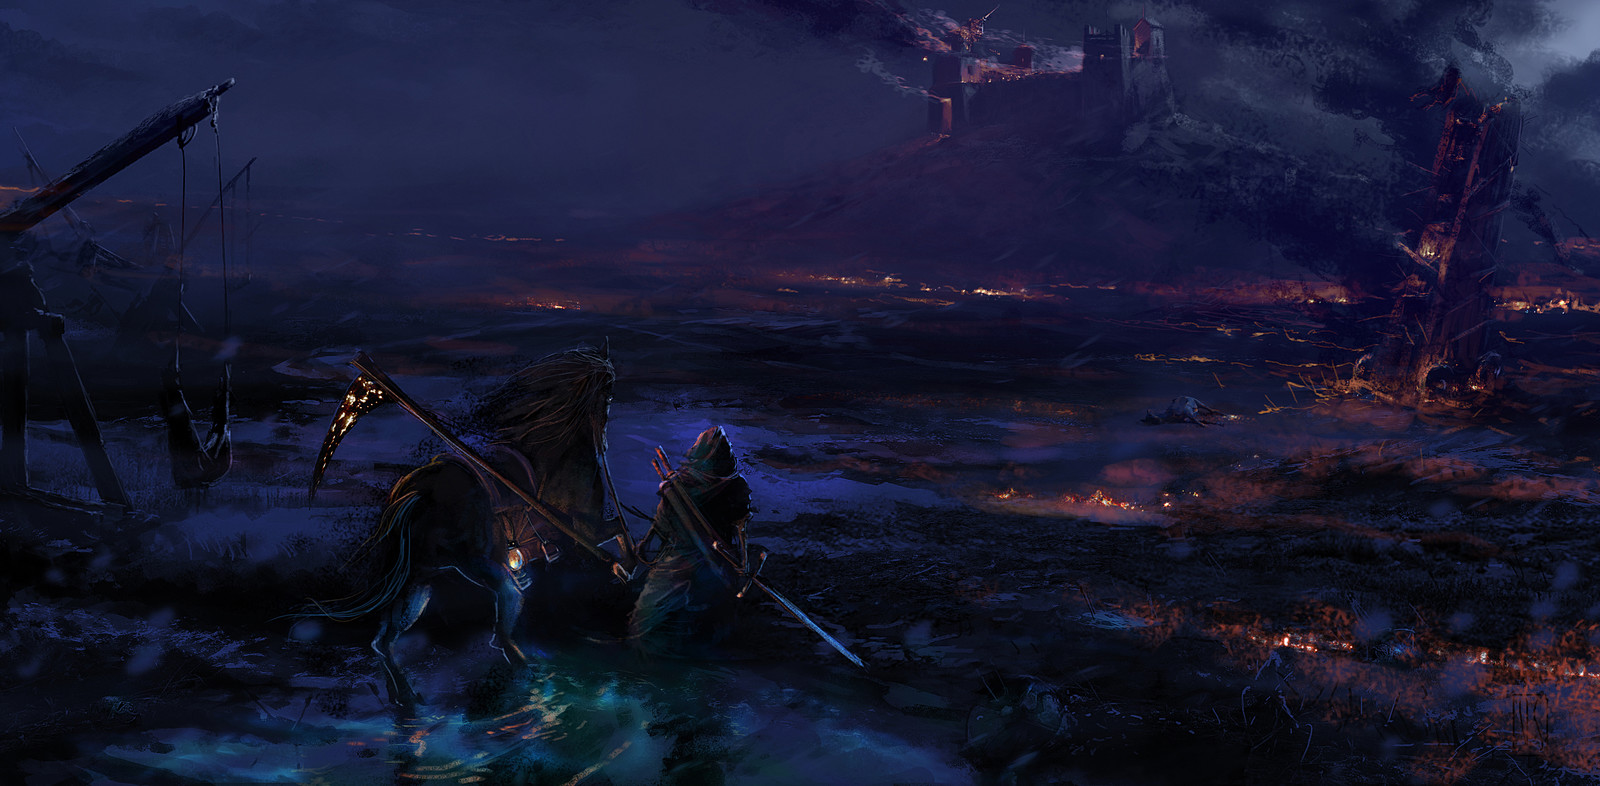 After the battle (Night)